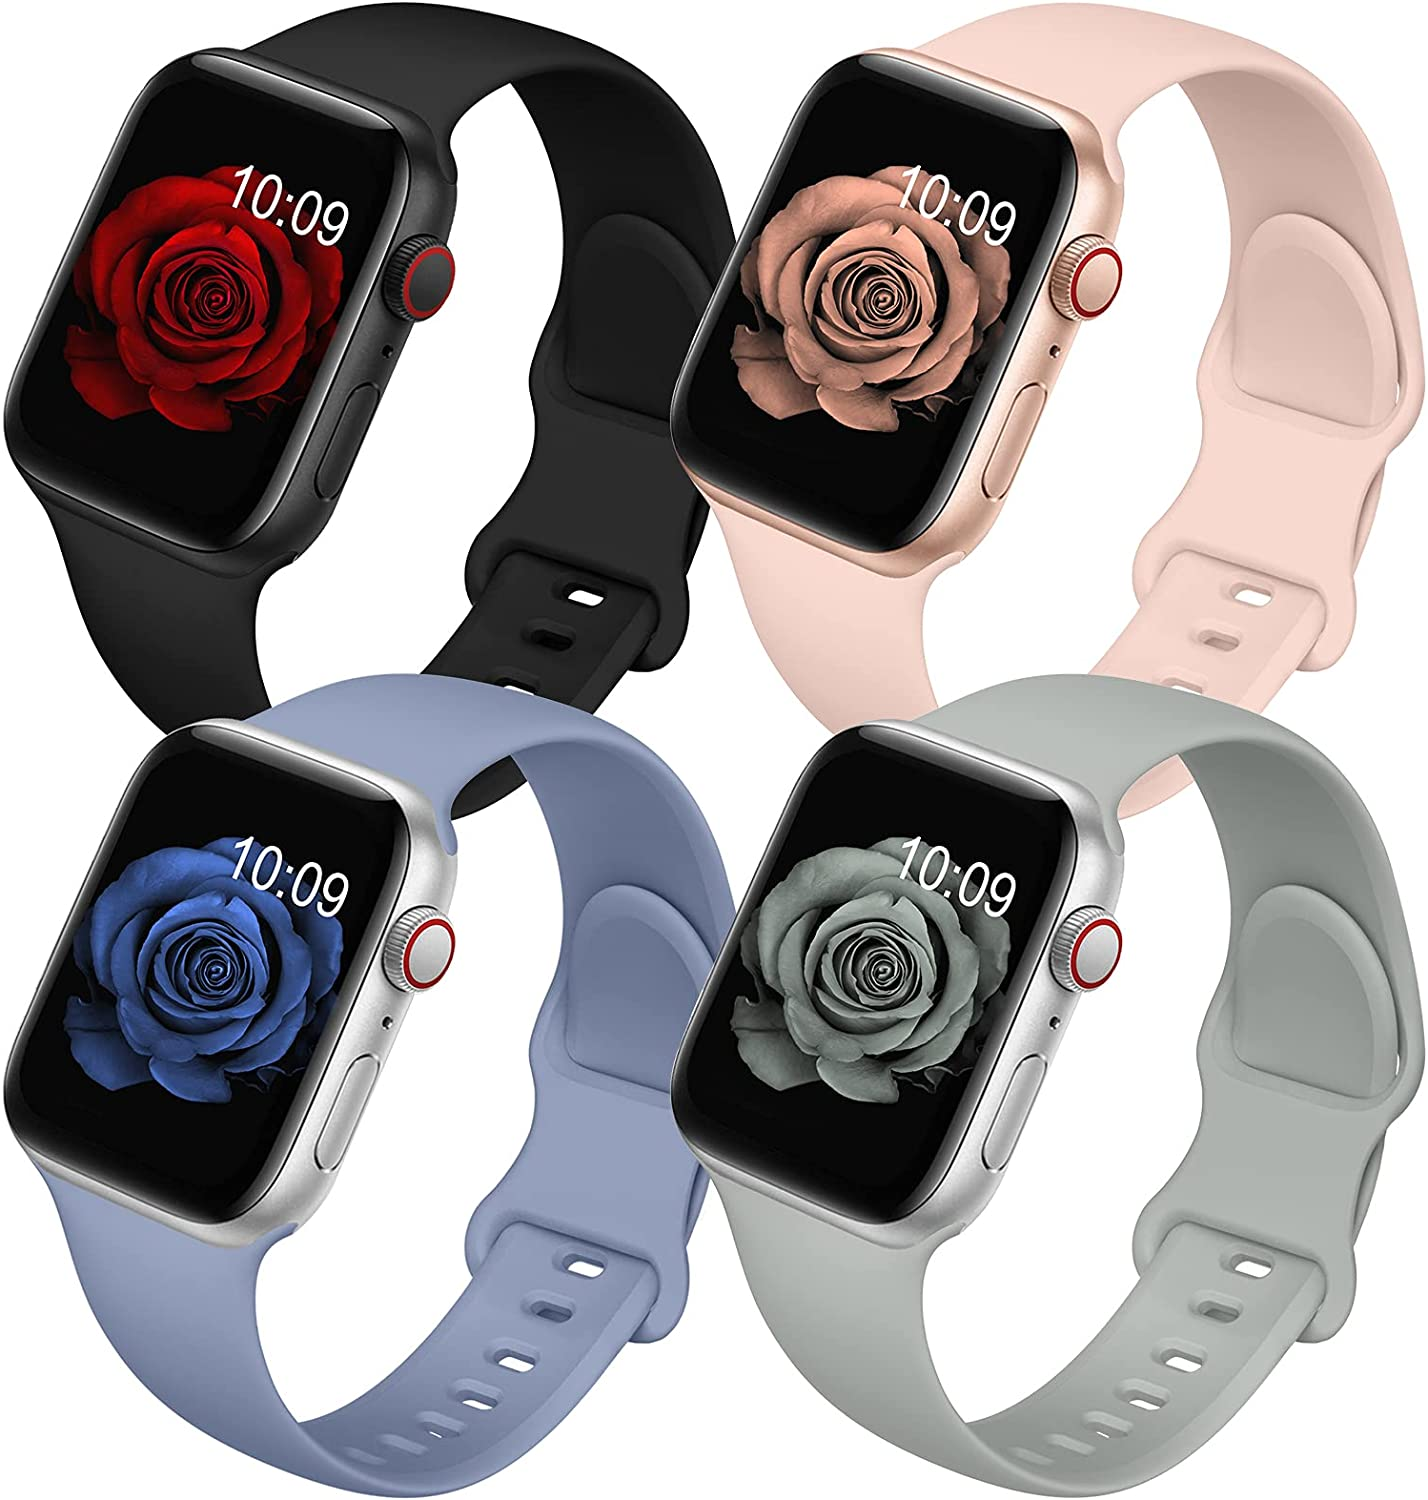 4 Pack Bands Compatible with Apple Watch Band 38mm 40mm 42mm 44mm for Women Men, Soft Silicone Sport Replacement Watch Strap for iwatch Series SE/ 6/5/4/3/2/1 Black/Gray/Lavender Gray/Pink Sand